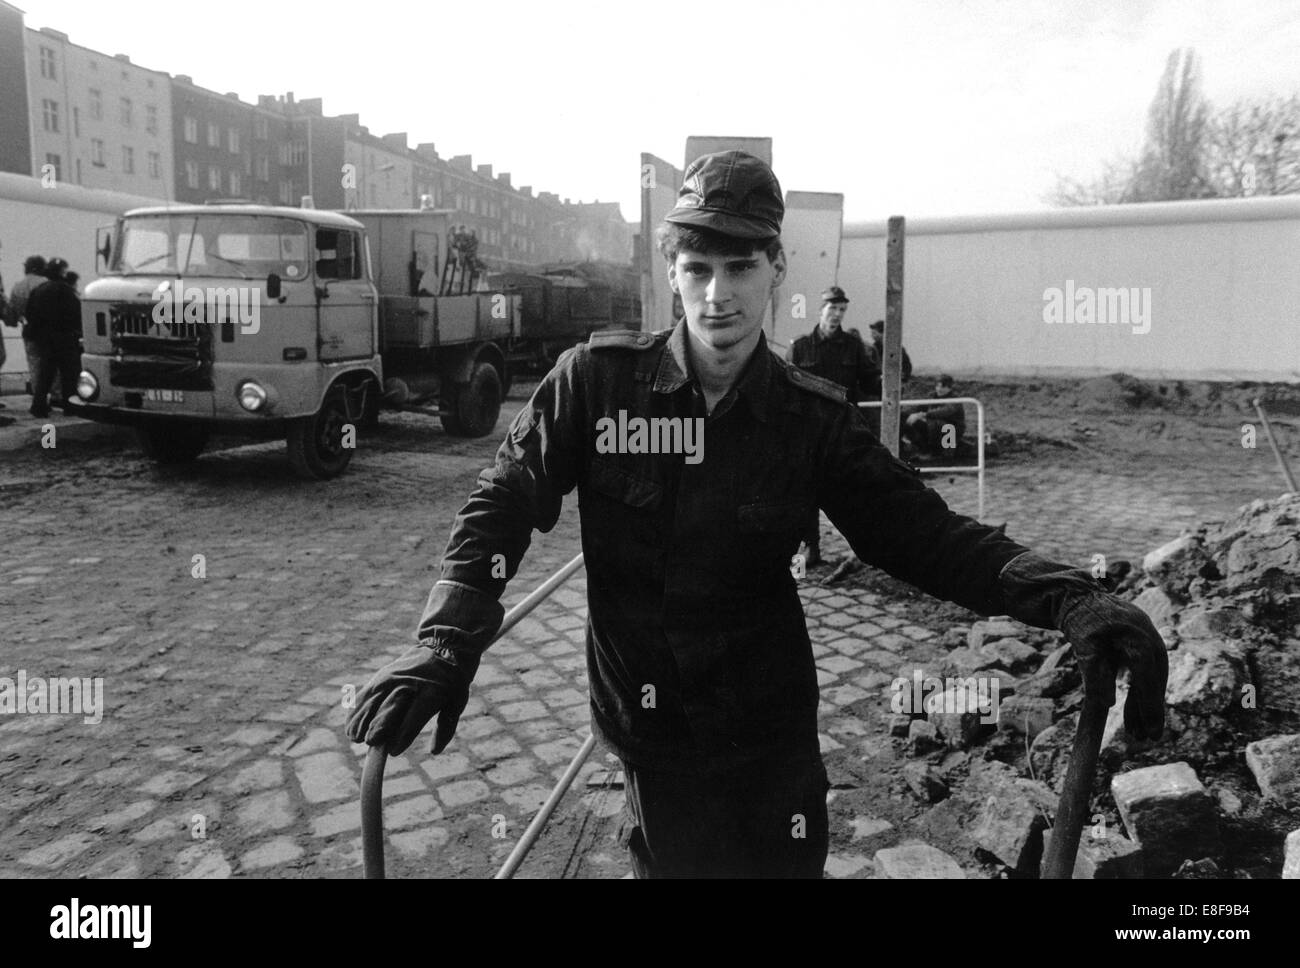 A former GDR border officer poses at a provisional border crossing at Eberswalder Street, opened to enable East - Stock Image